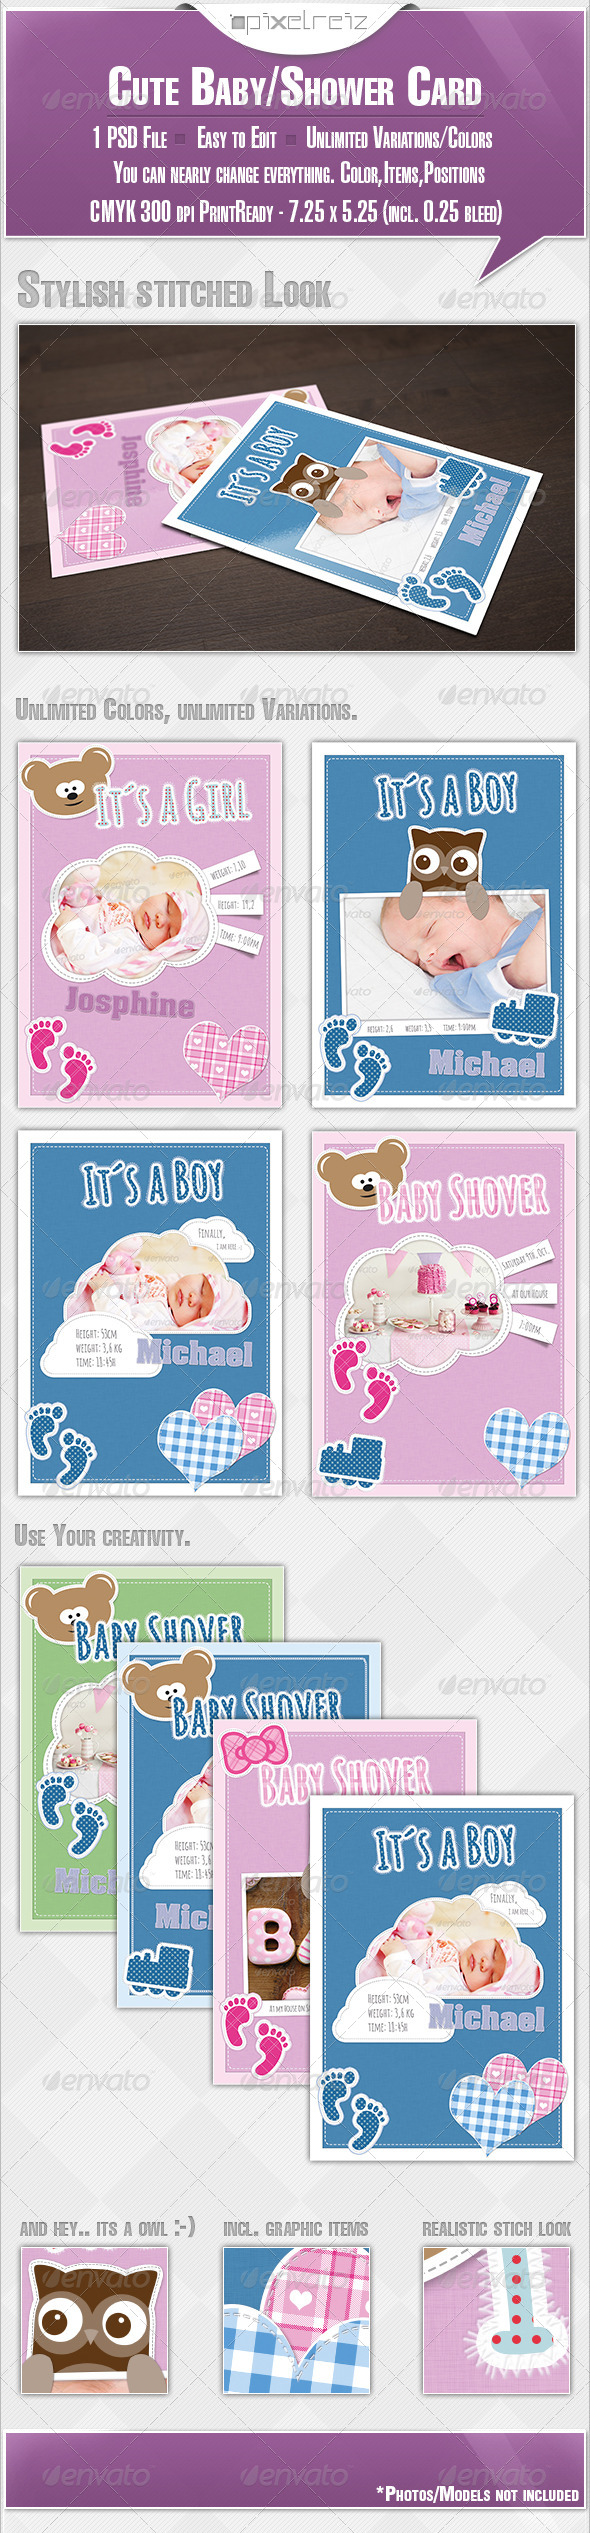 GraphicRiver Cute Baby BabyShower Card 5436069